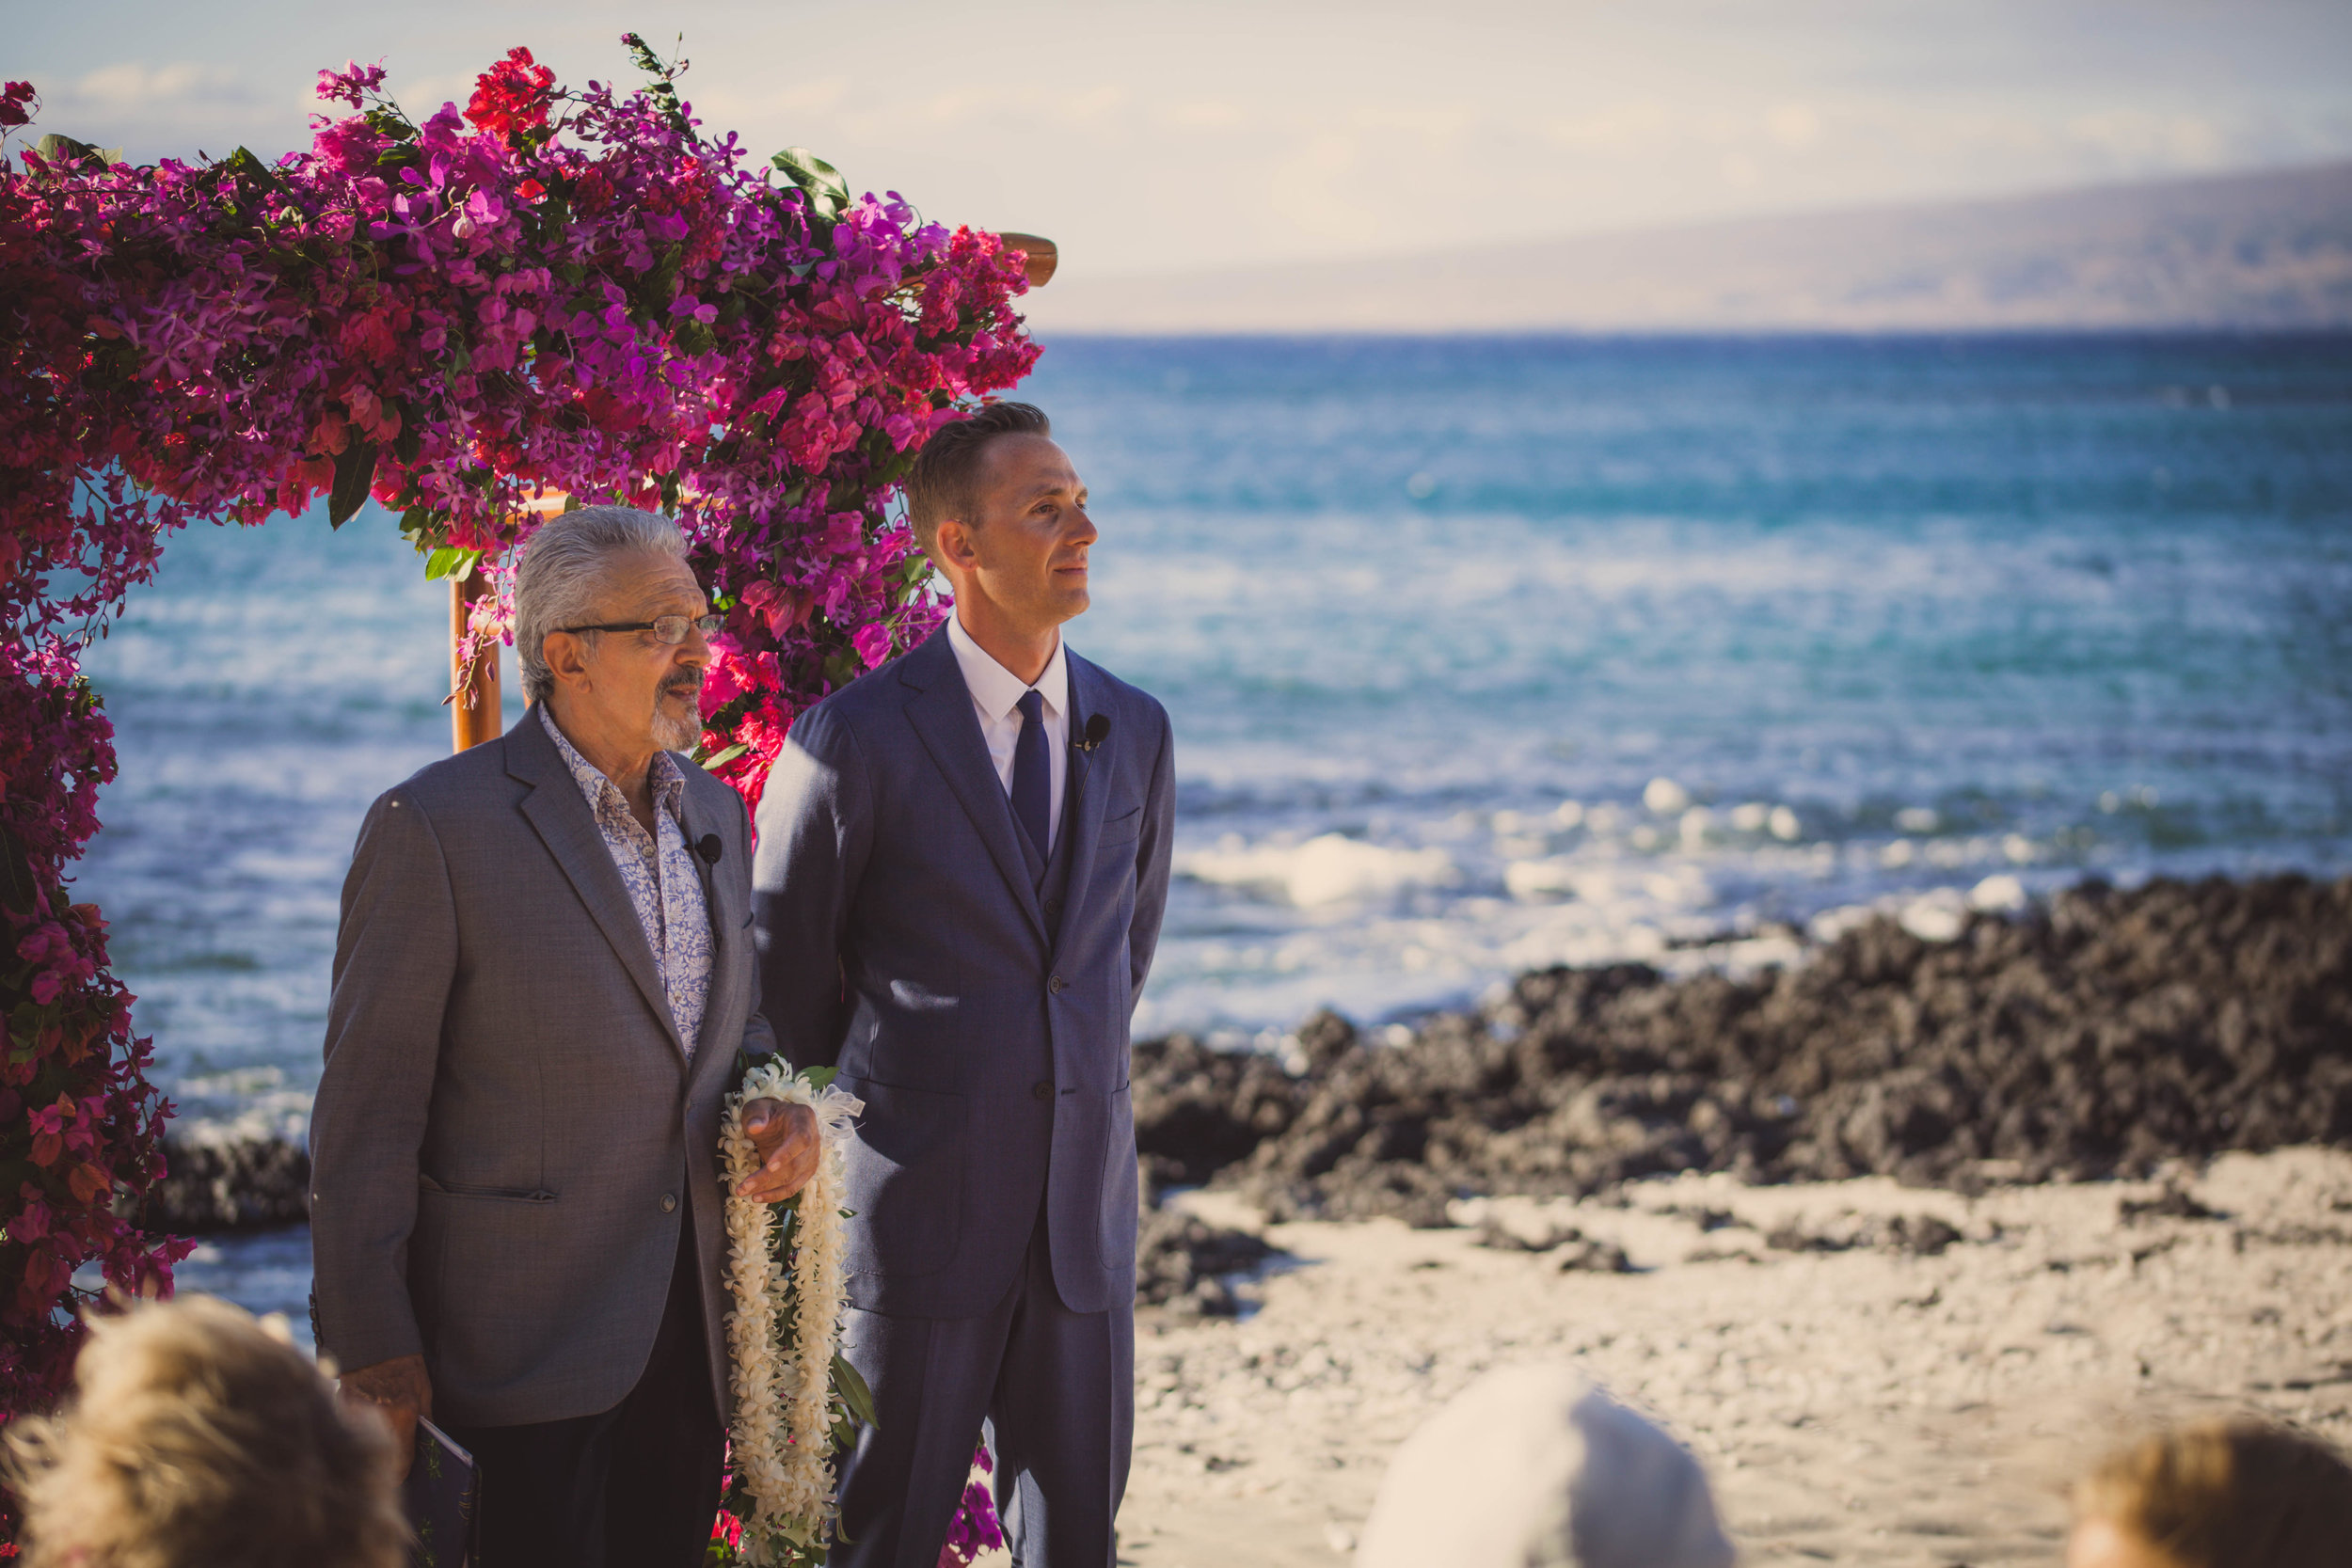 big island hawaii fairmont orchid beach wedding © kelilina photography 20170812173119-1.jpg